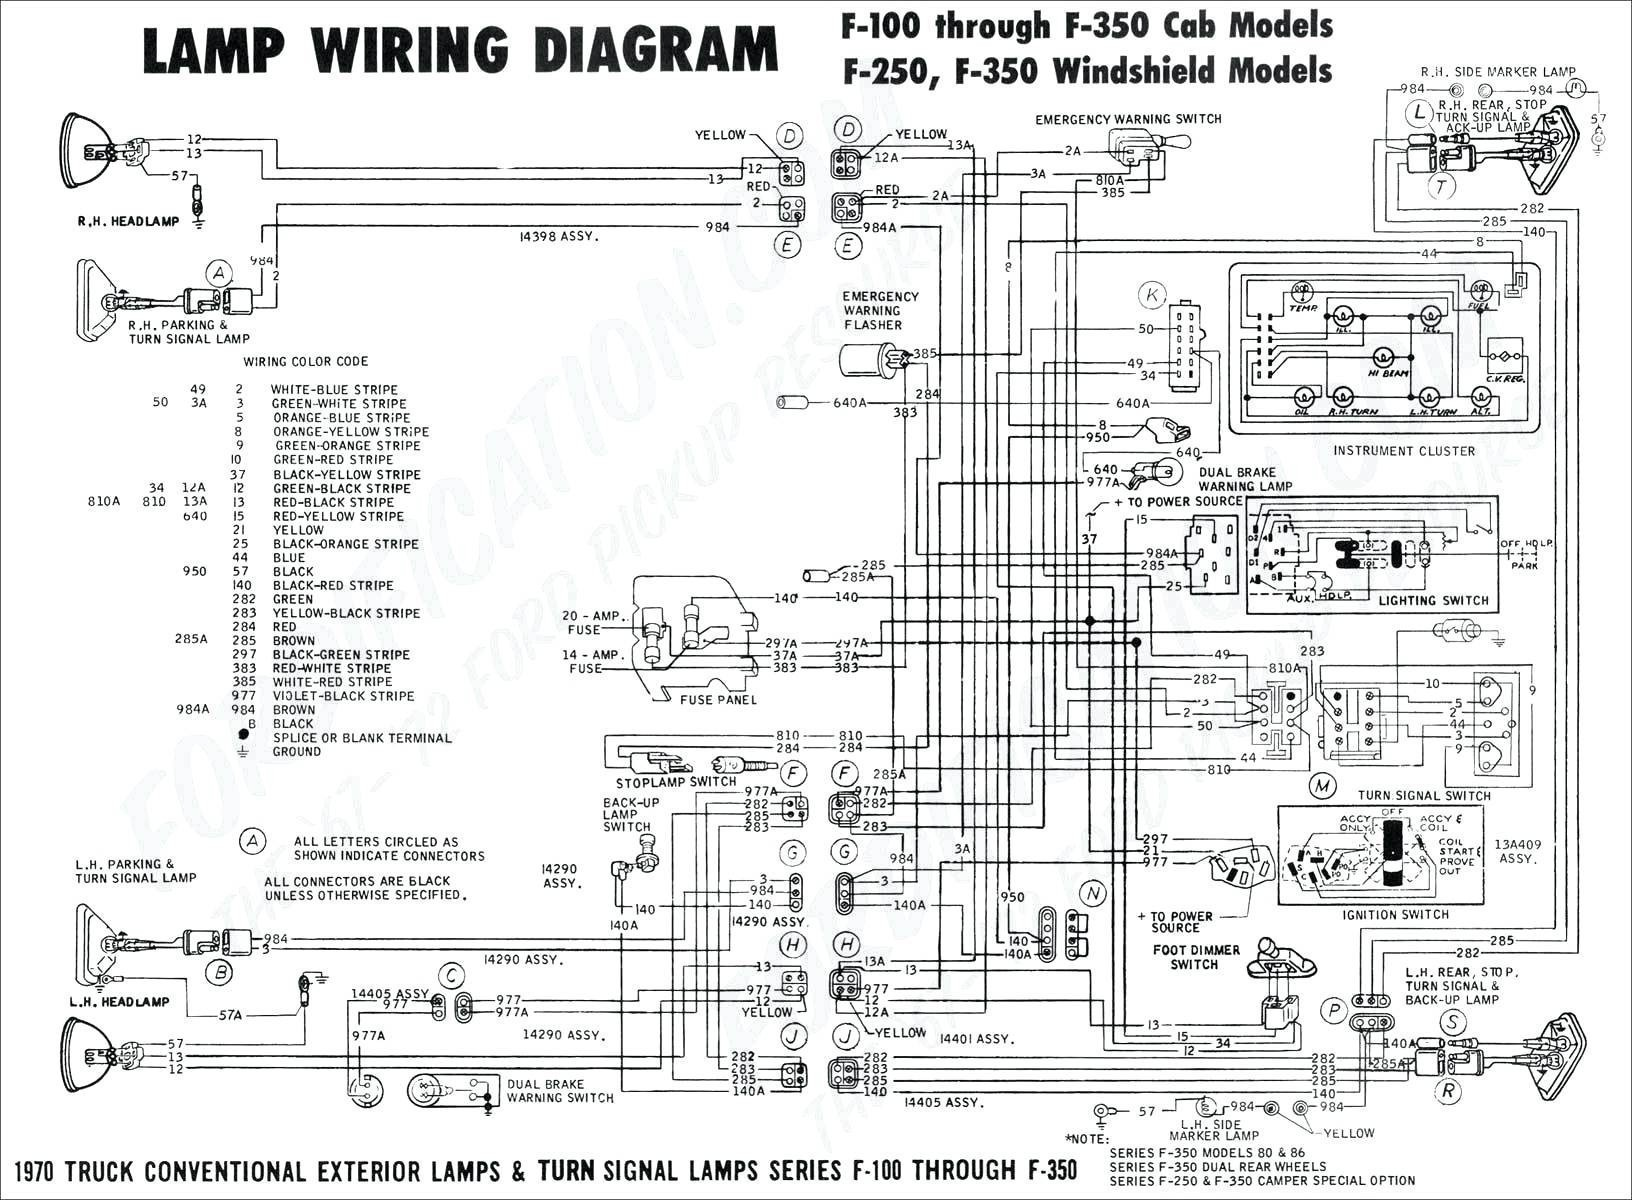 Subaru    Impreza       Wiring       Diagram      My    Wiring       DIagram